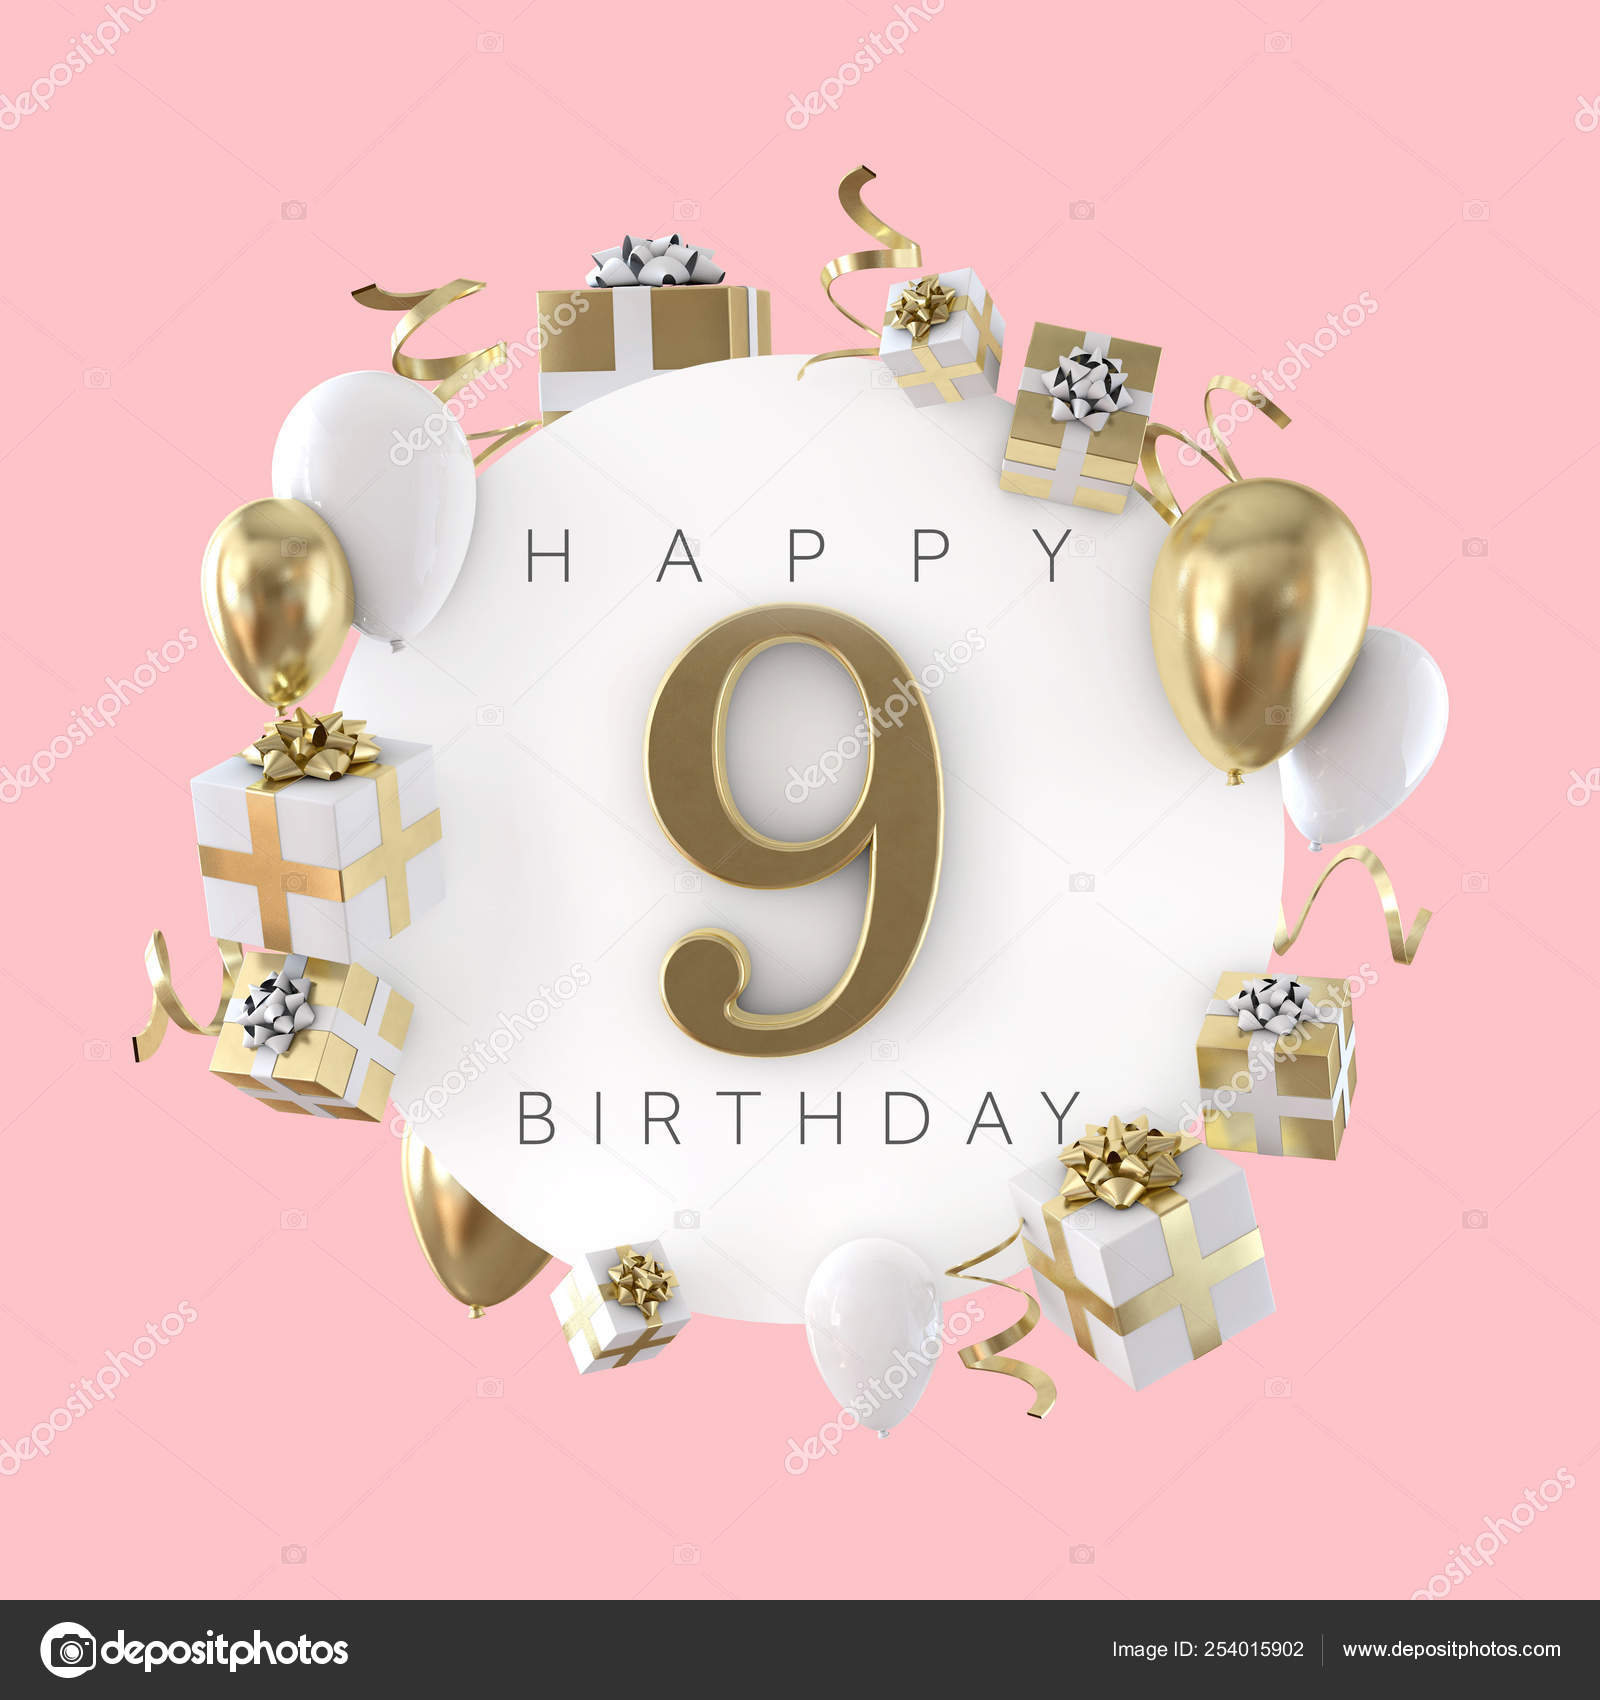 Happy 9th Birthday Party Composition With Balloons And Presents 3d Render Stock Photo Image By C Inkdropcreative 254015902